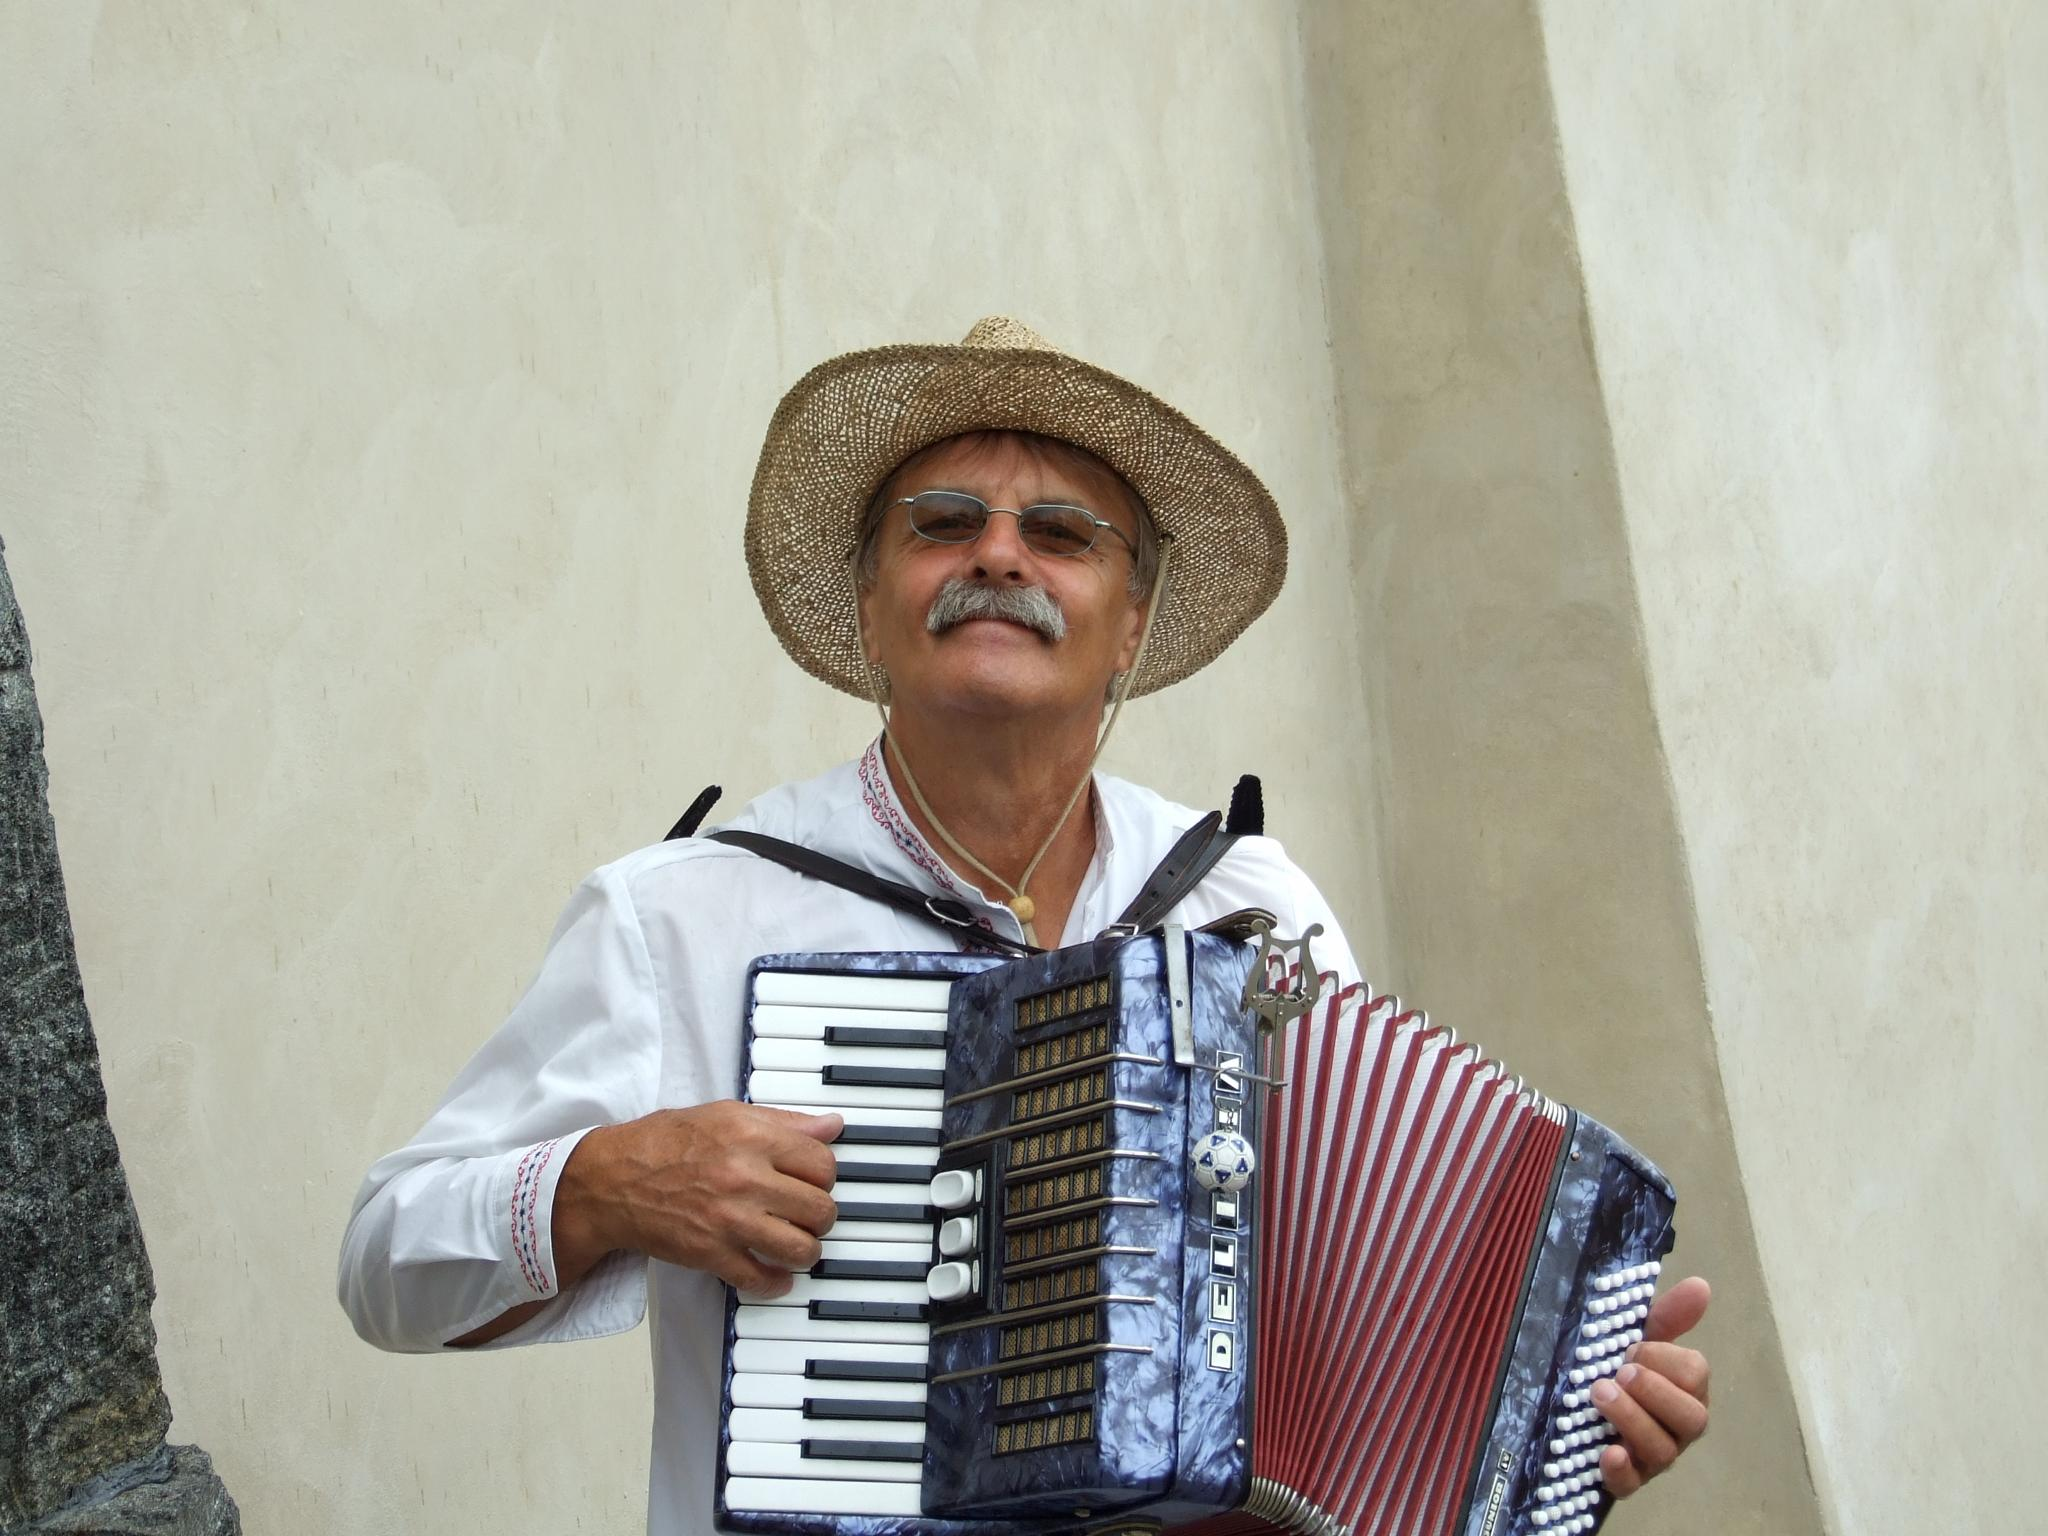 Czech Accordion Player by ldguard